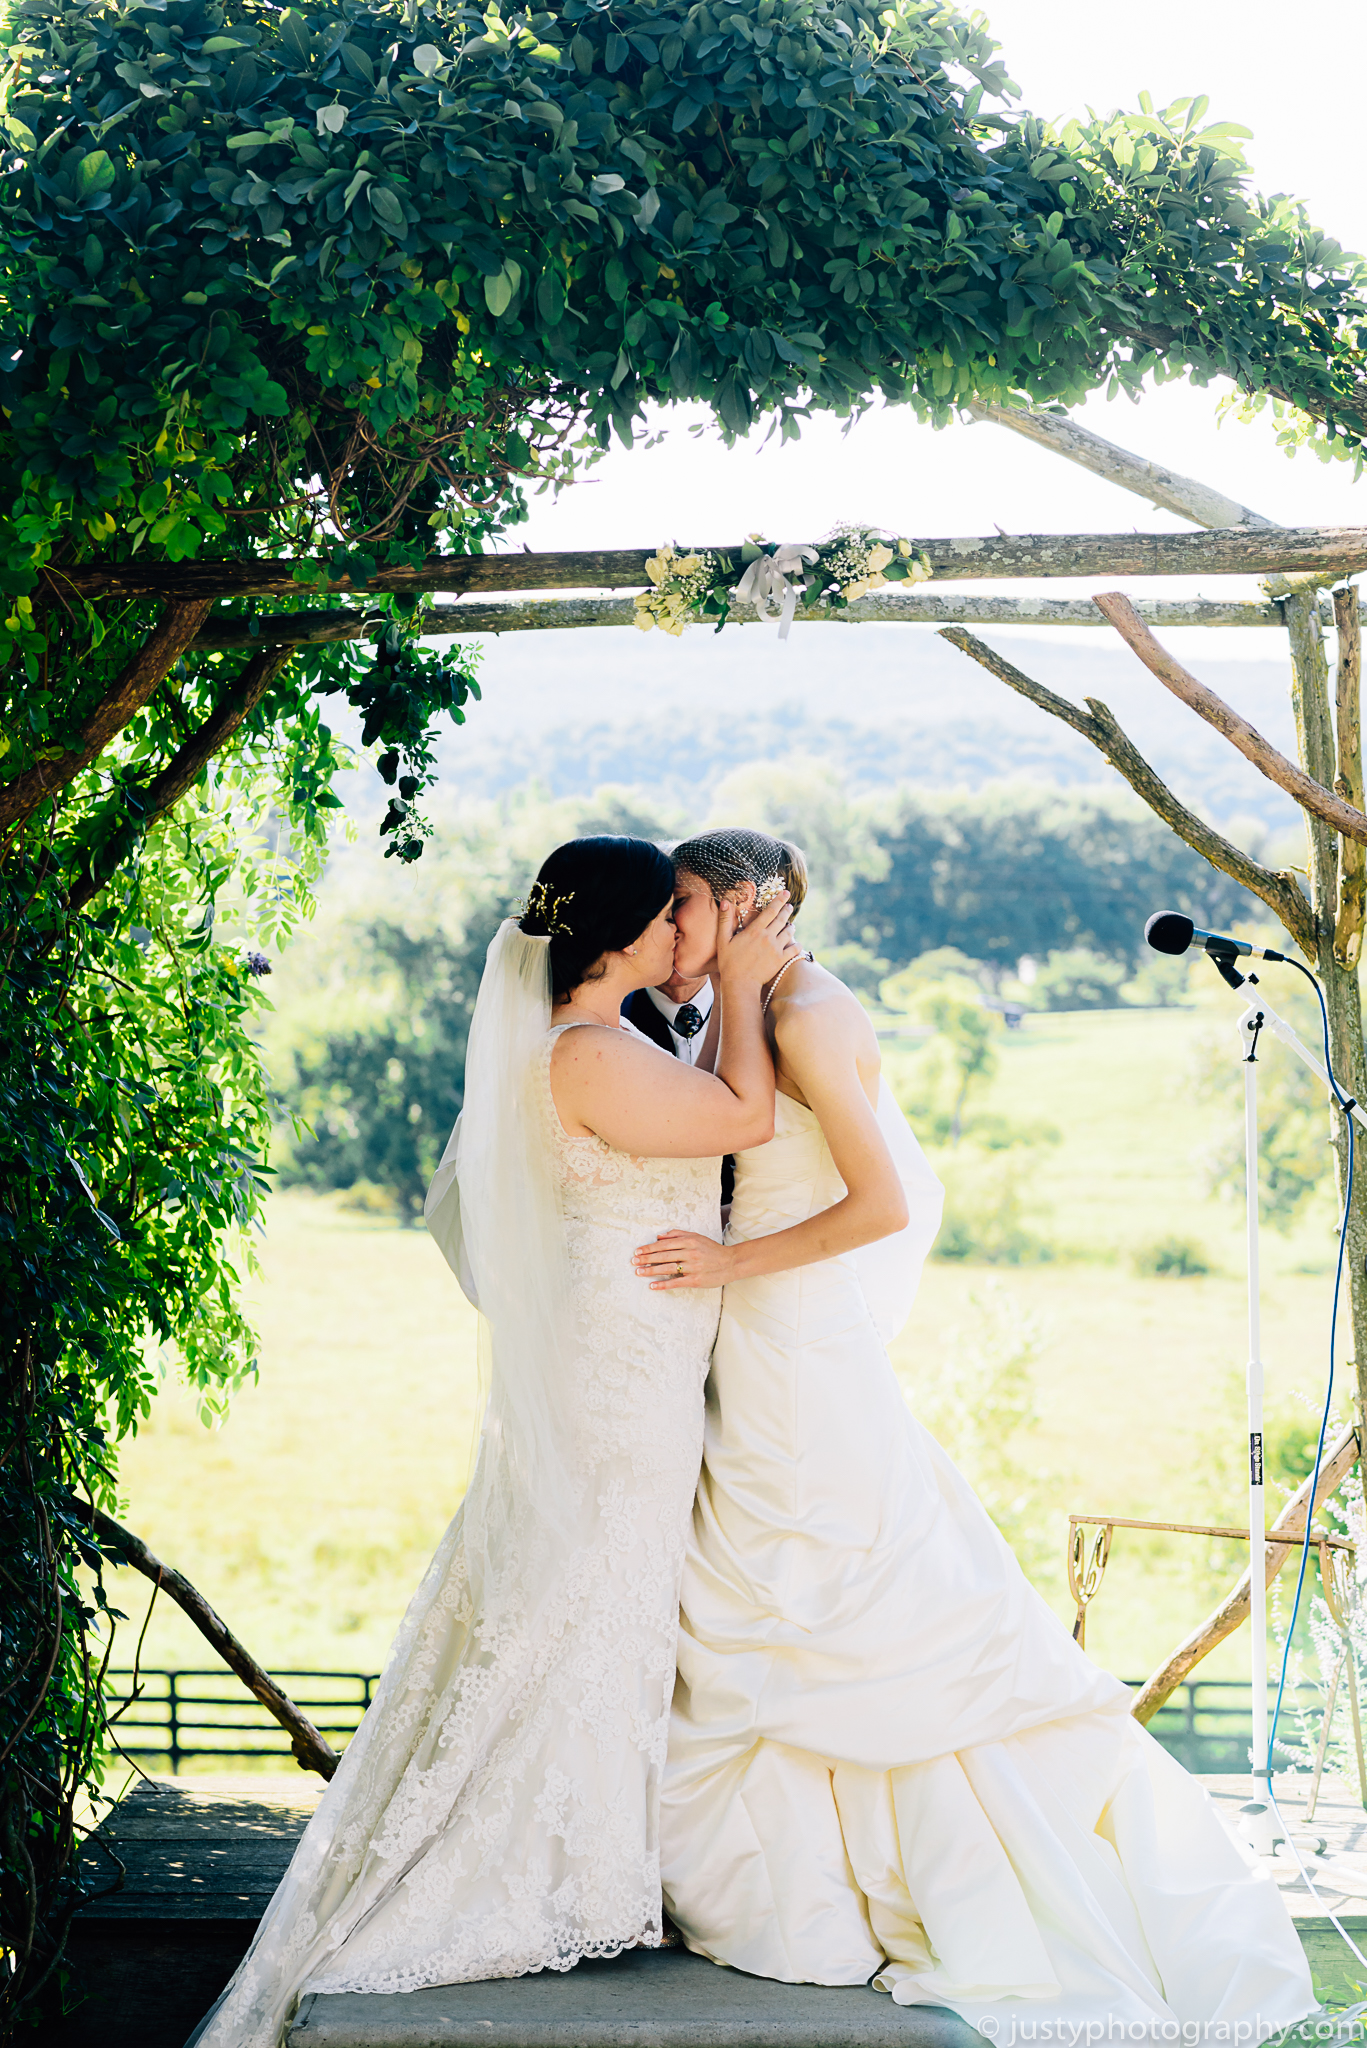 Silverbrook Farm Wedding Photos - Washington DC Wedding Photographer - First Kiss